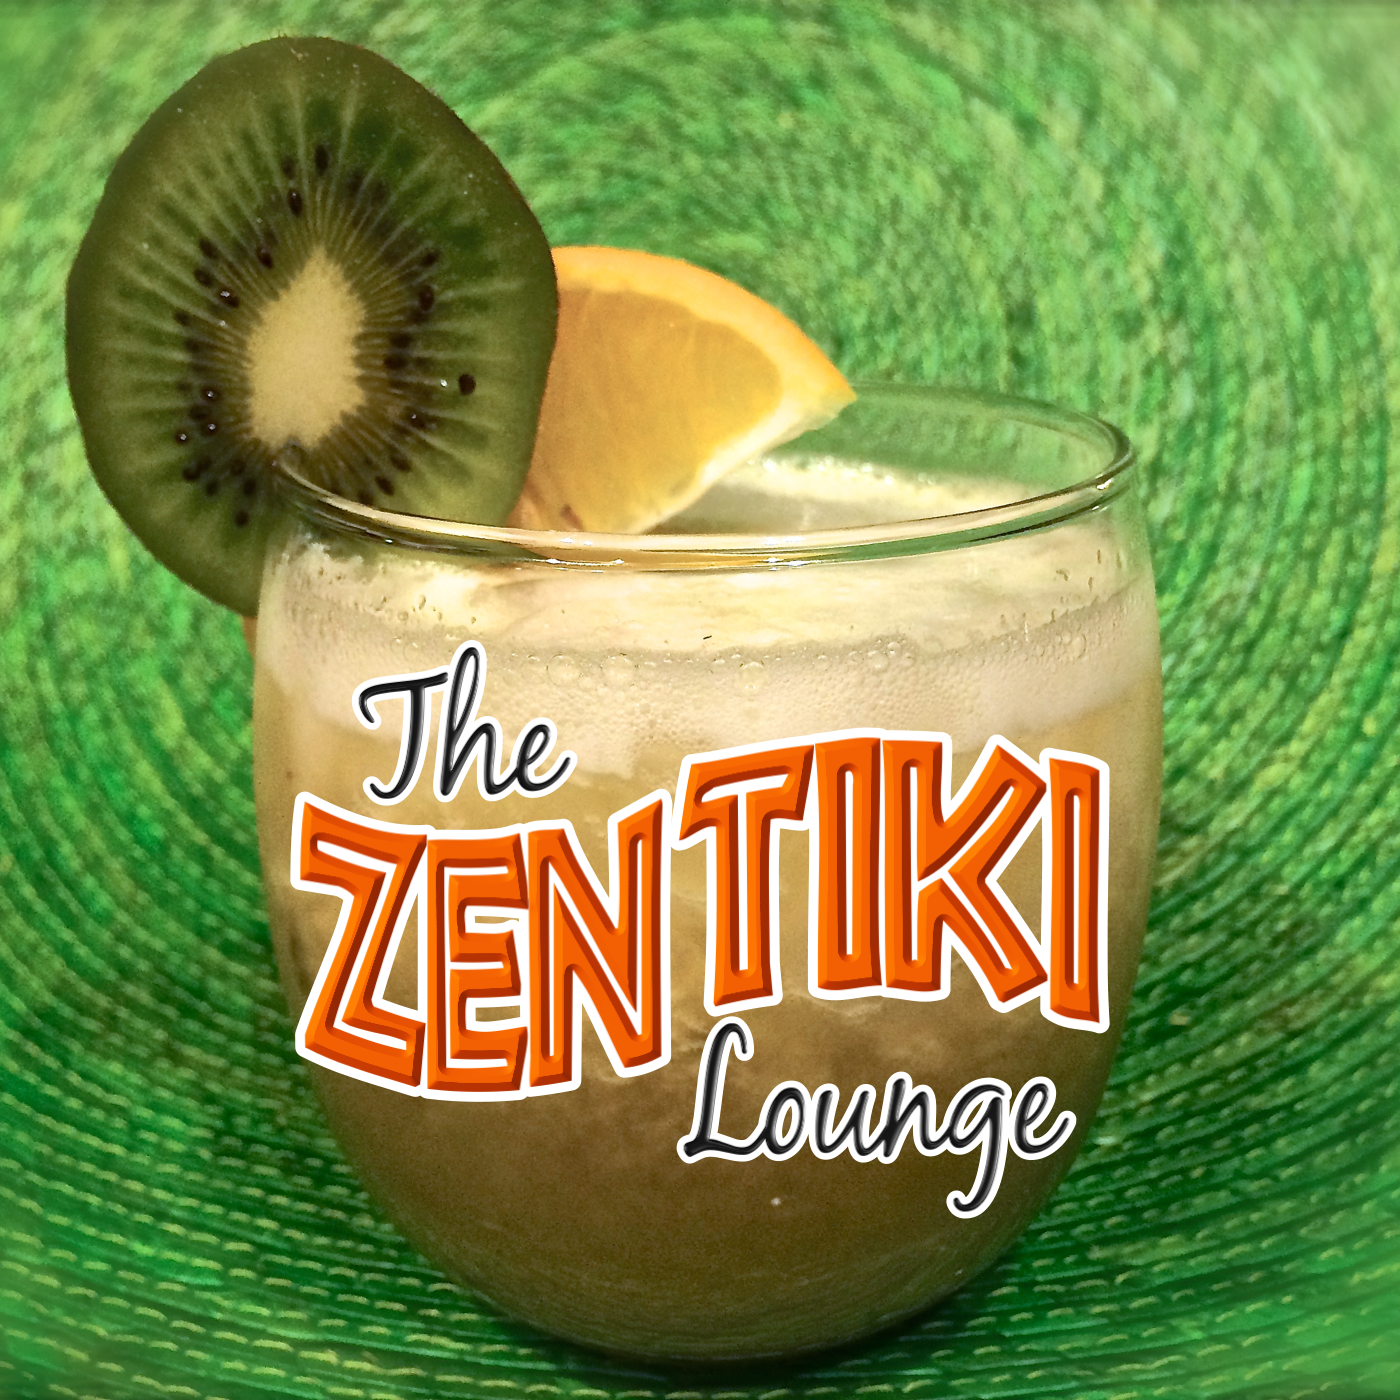 More drinks like this at www.zentikilounge.com